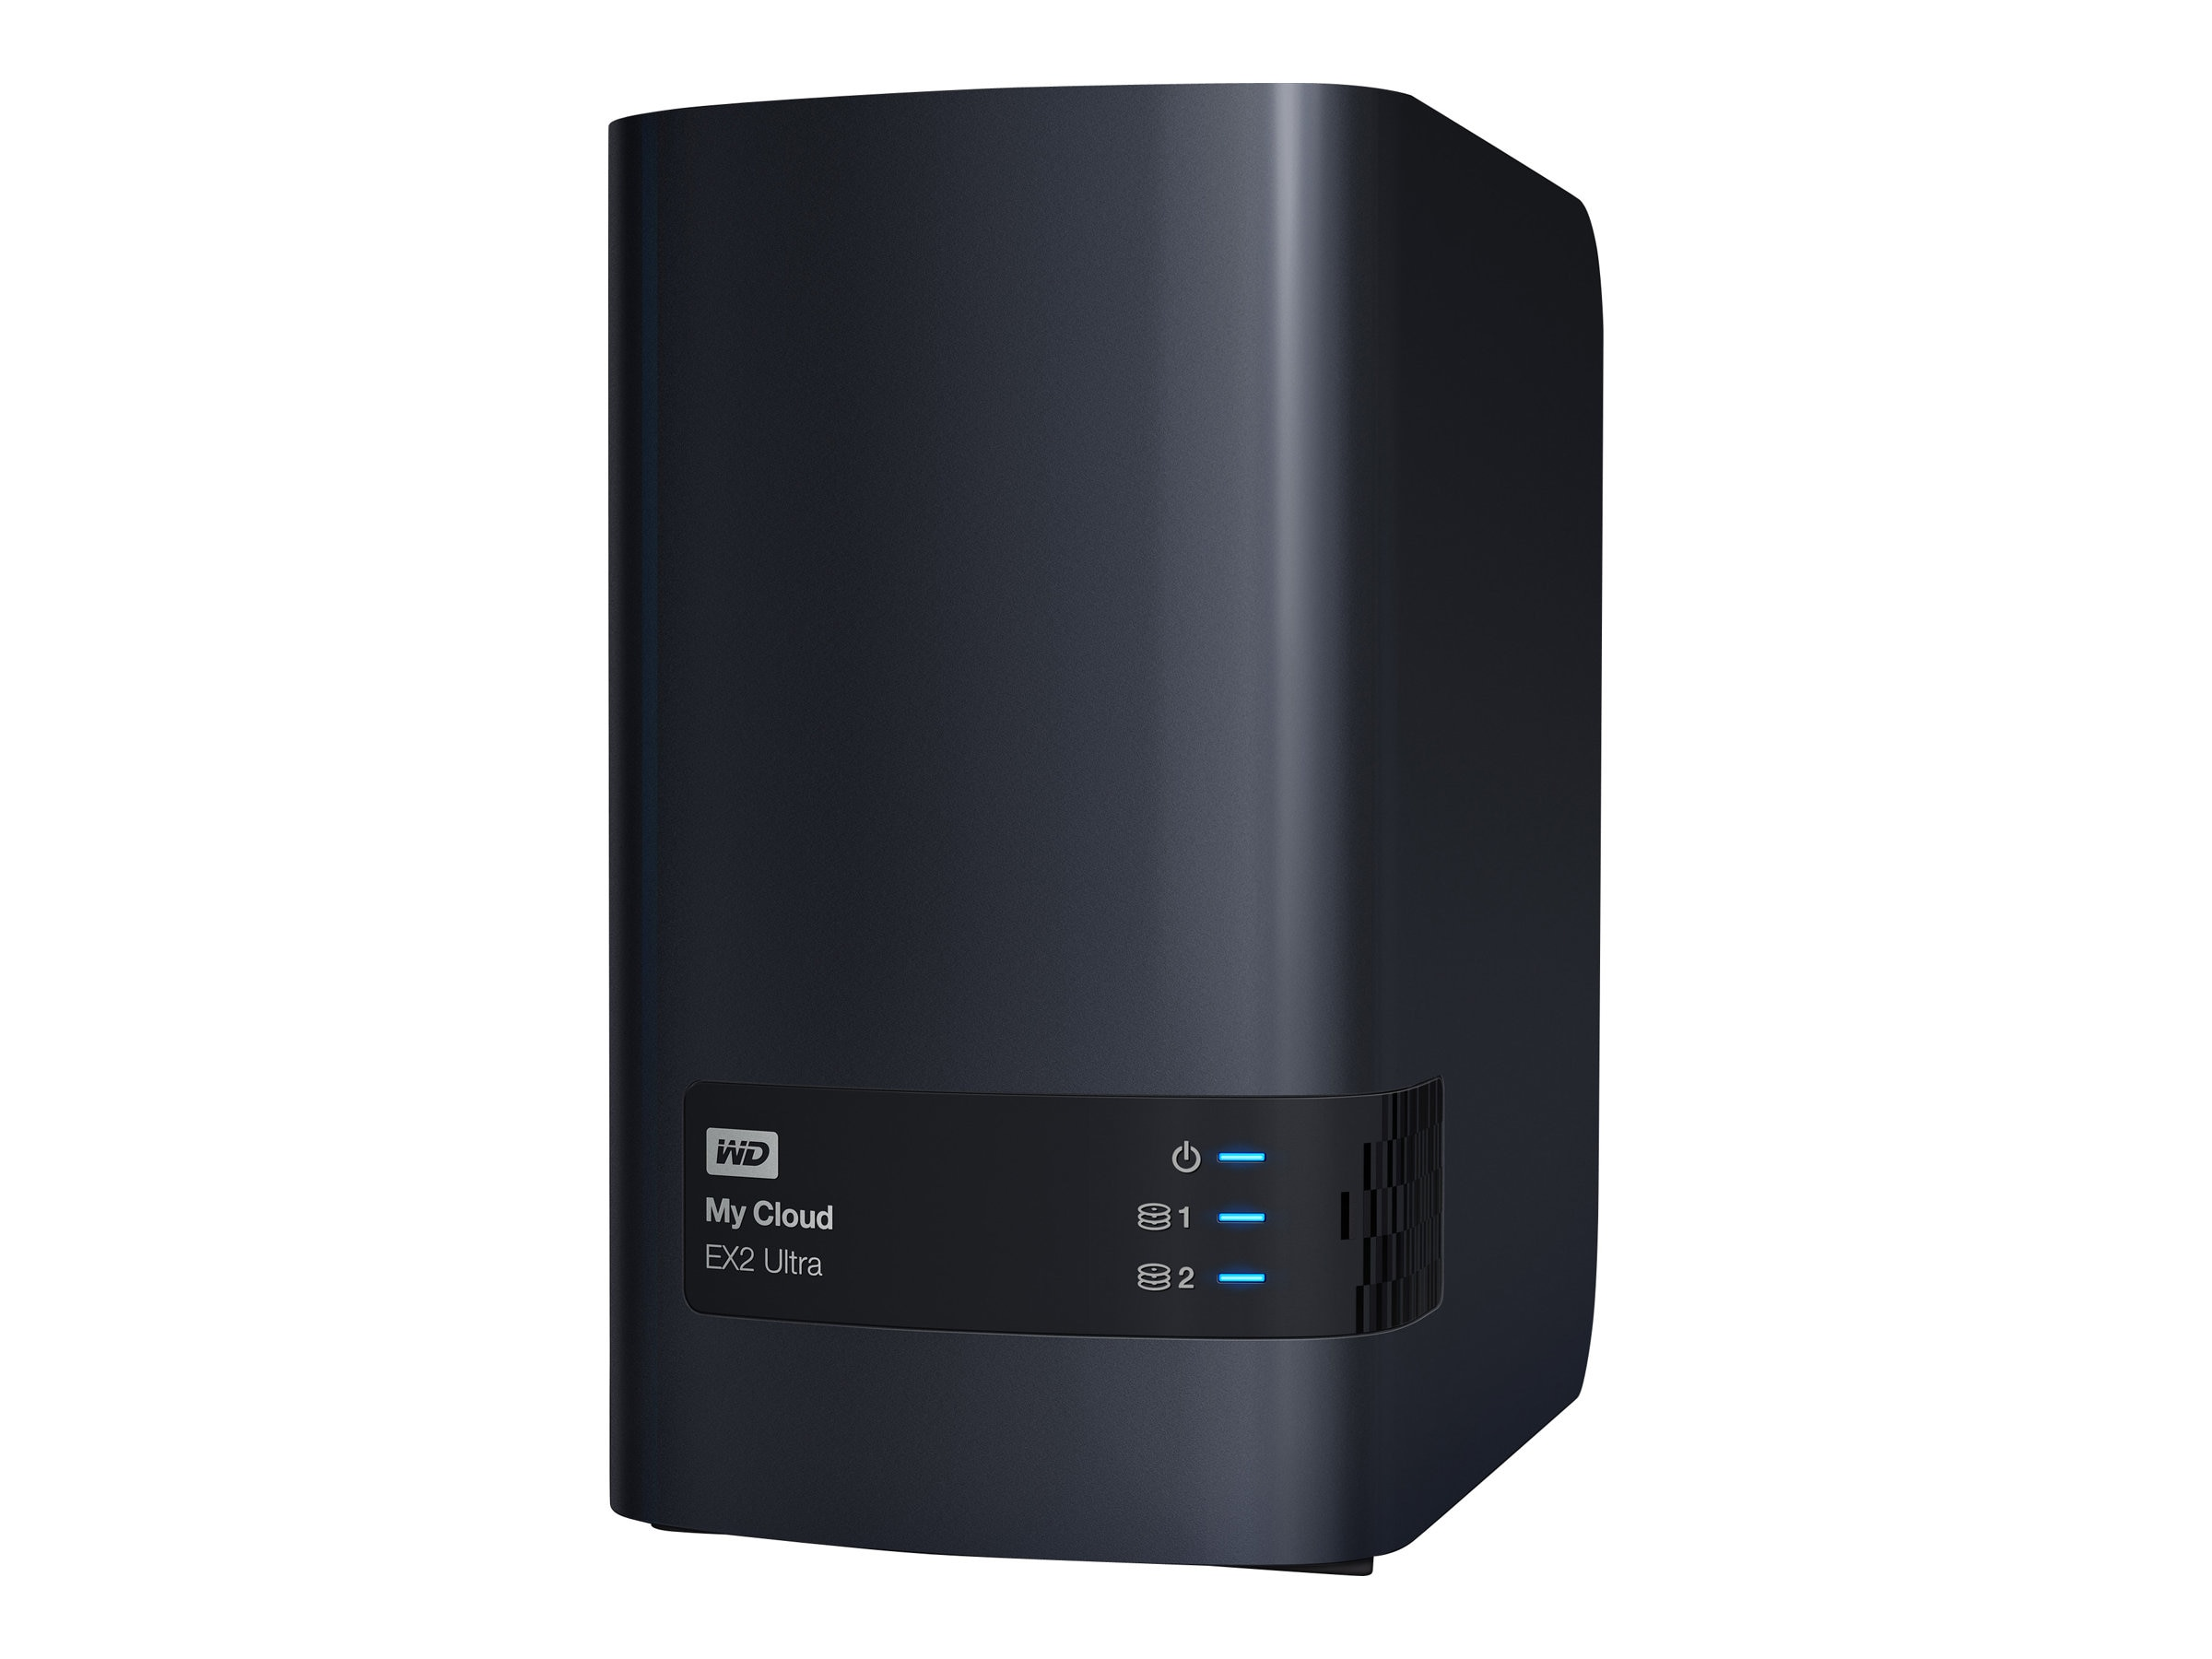 WD 12TB WD My Cloud EX2 Ultra Private Cloud NAS Storage